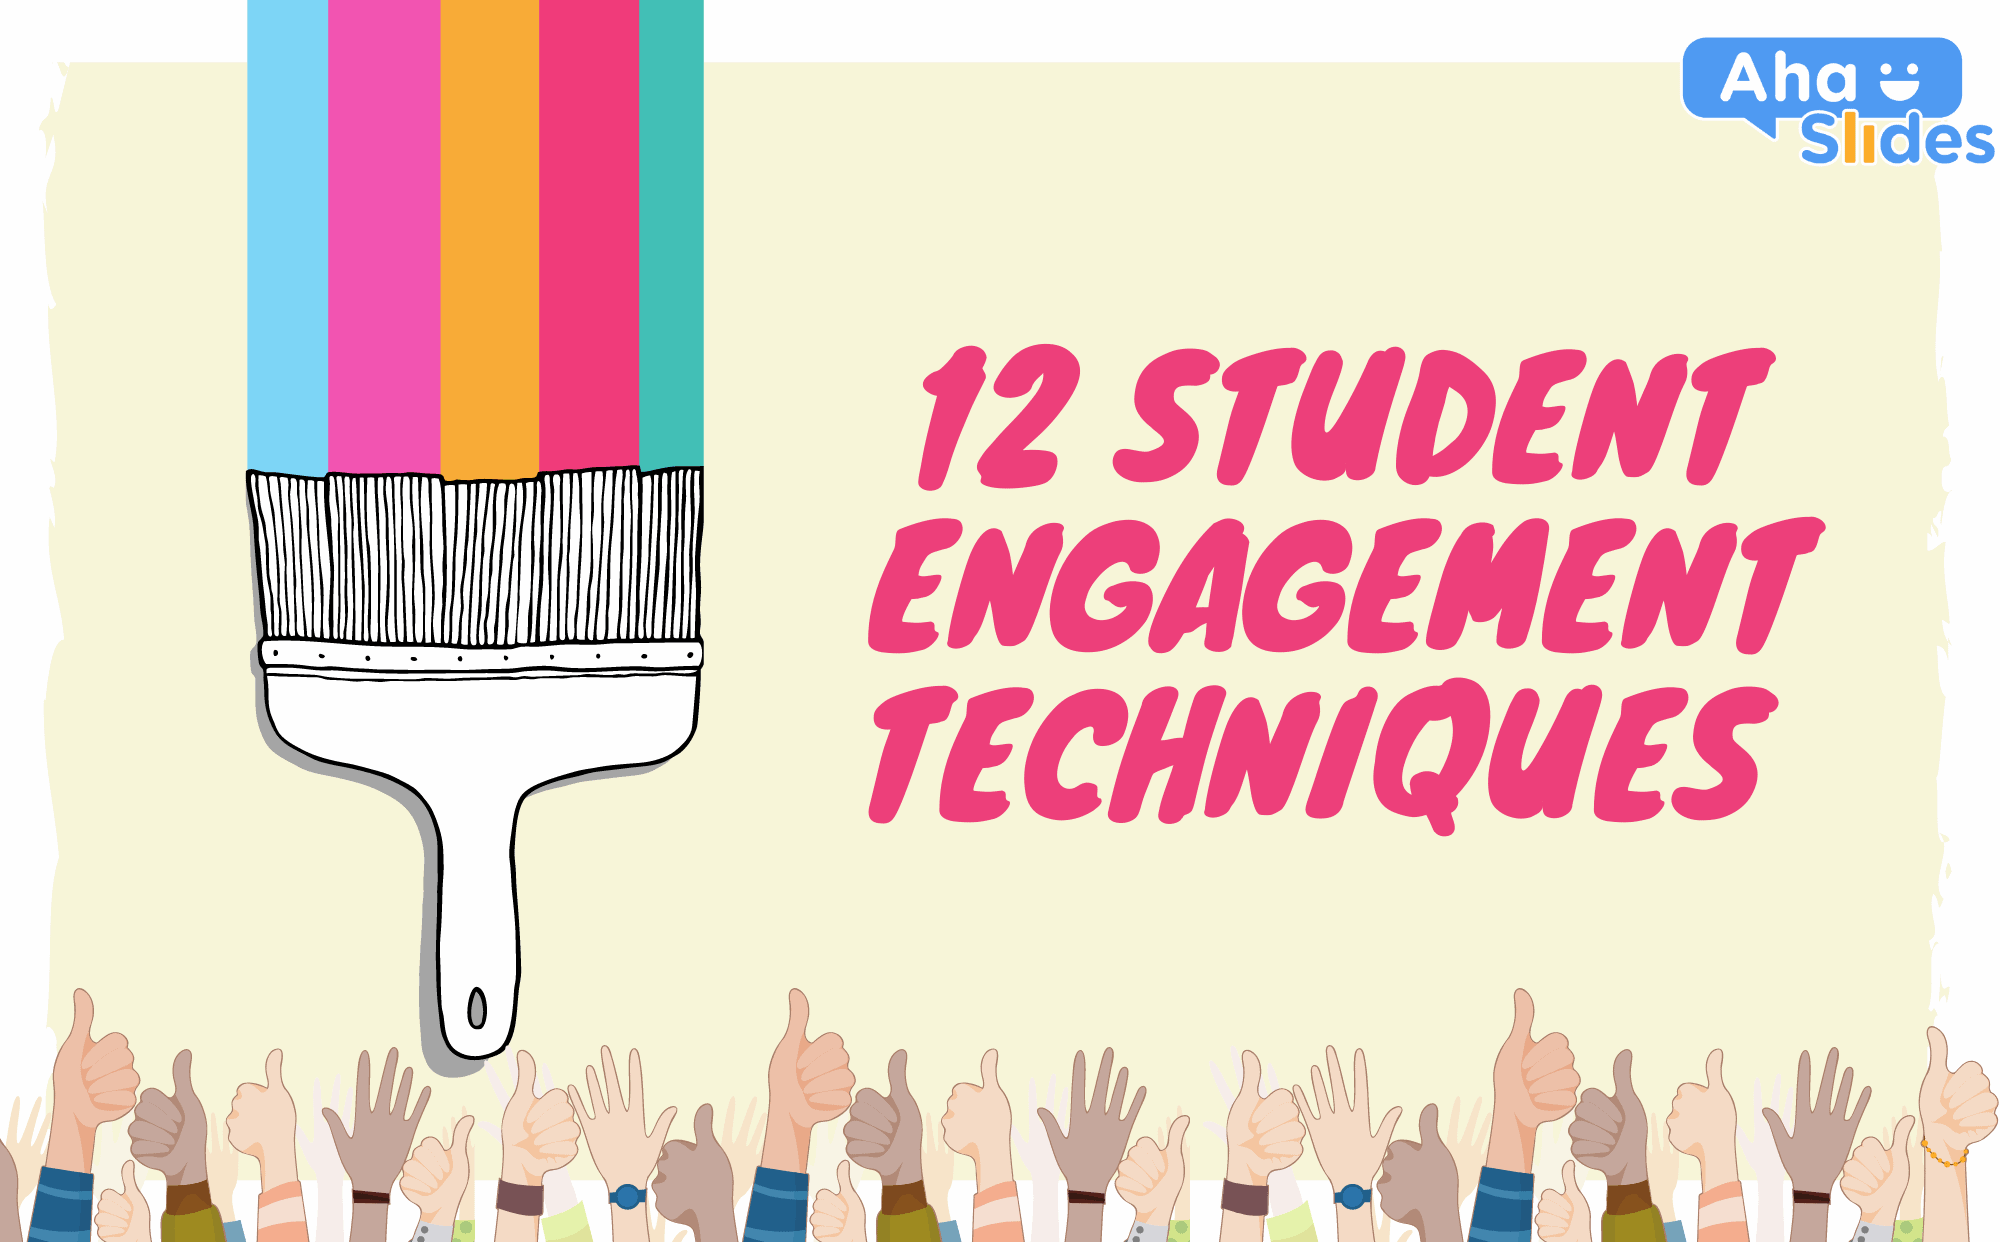 12 student engagement techniques to use in the live and online classroom - by AhaSlides